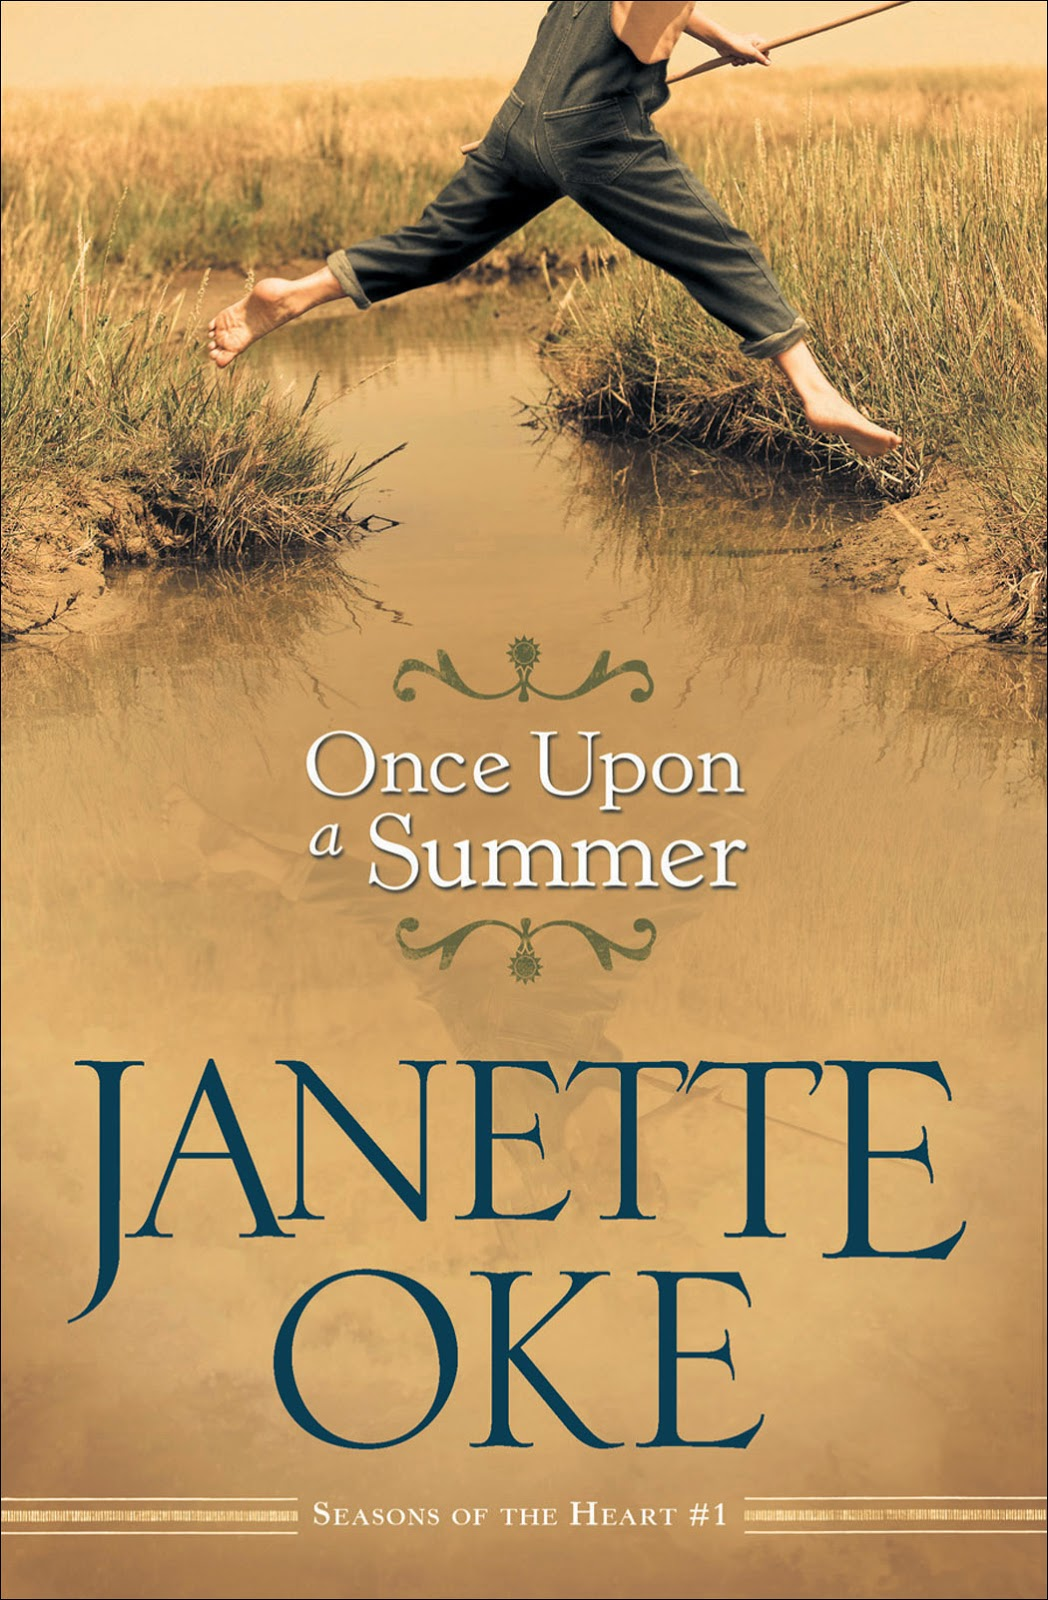 Once Upon a Summer written by Janette Oke Review by Sarah and published on Sarah's Reviews